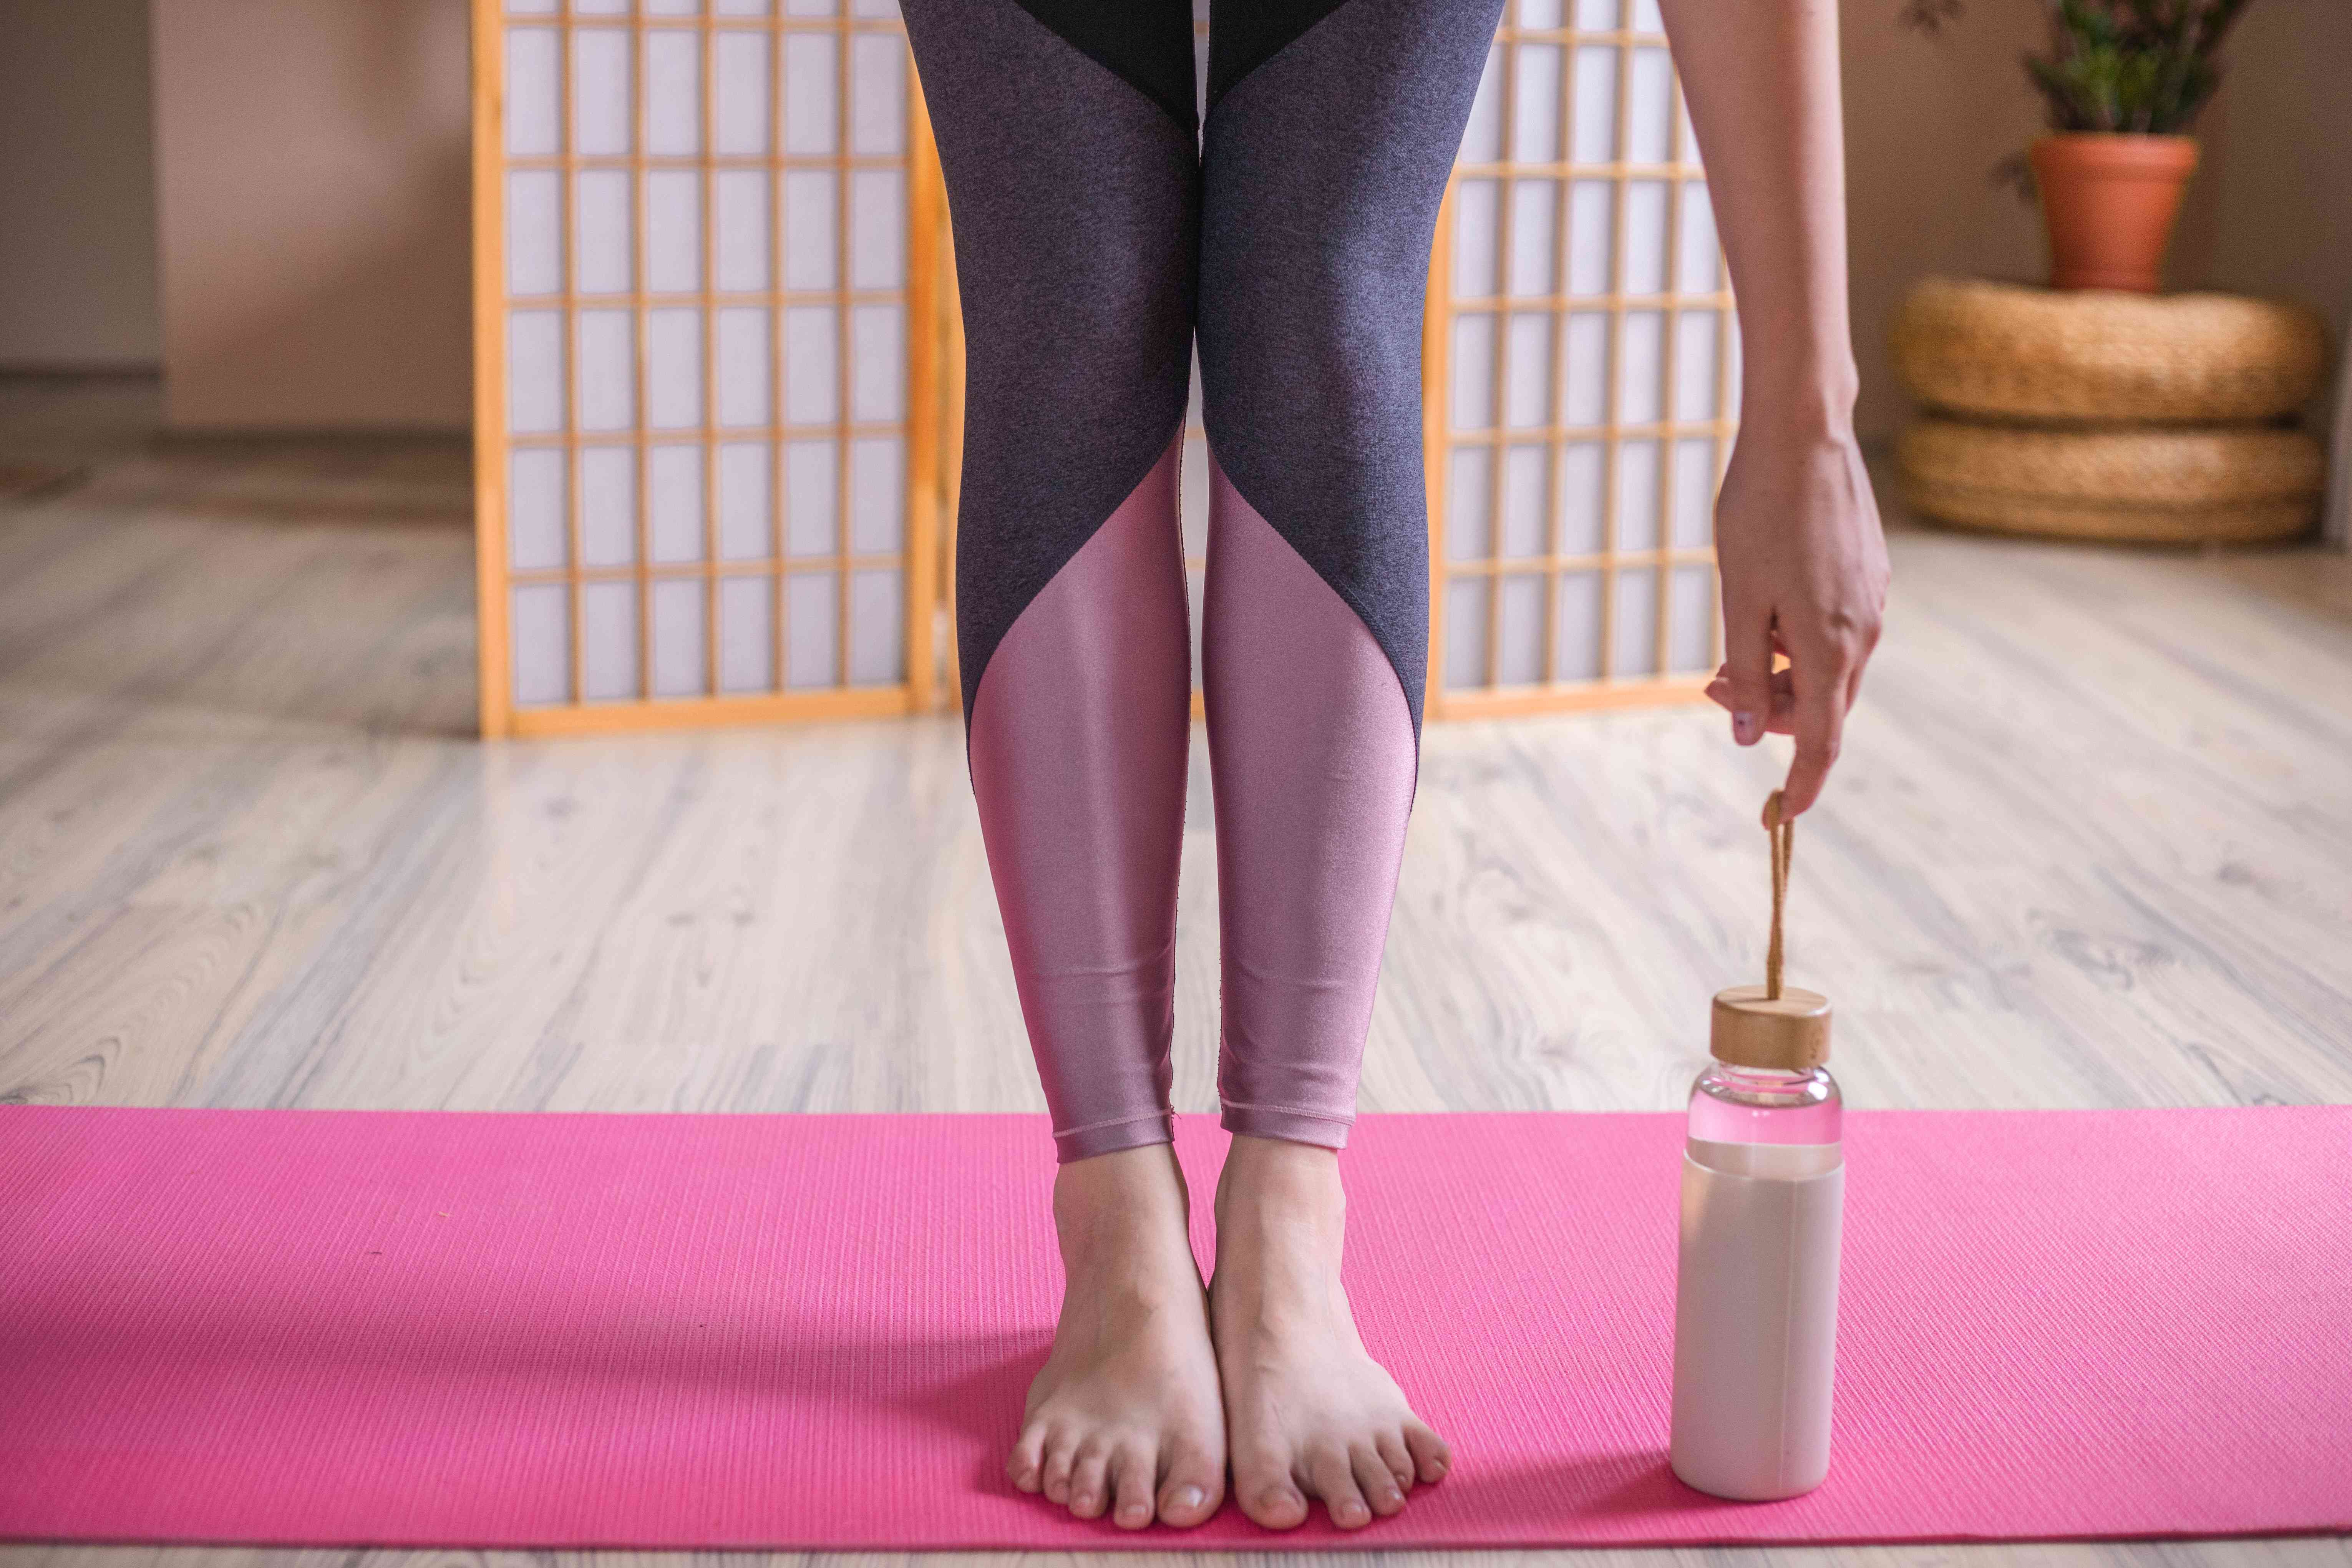 person wearing color-blocked leggings bends forward on pink yoga mat with glass water bottle